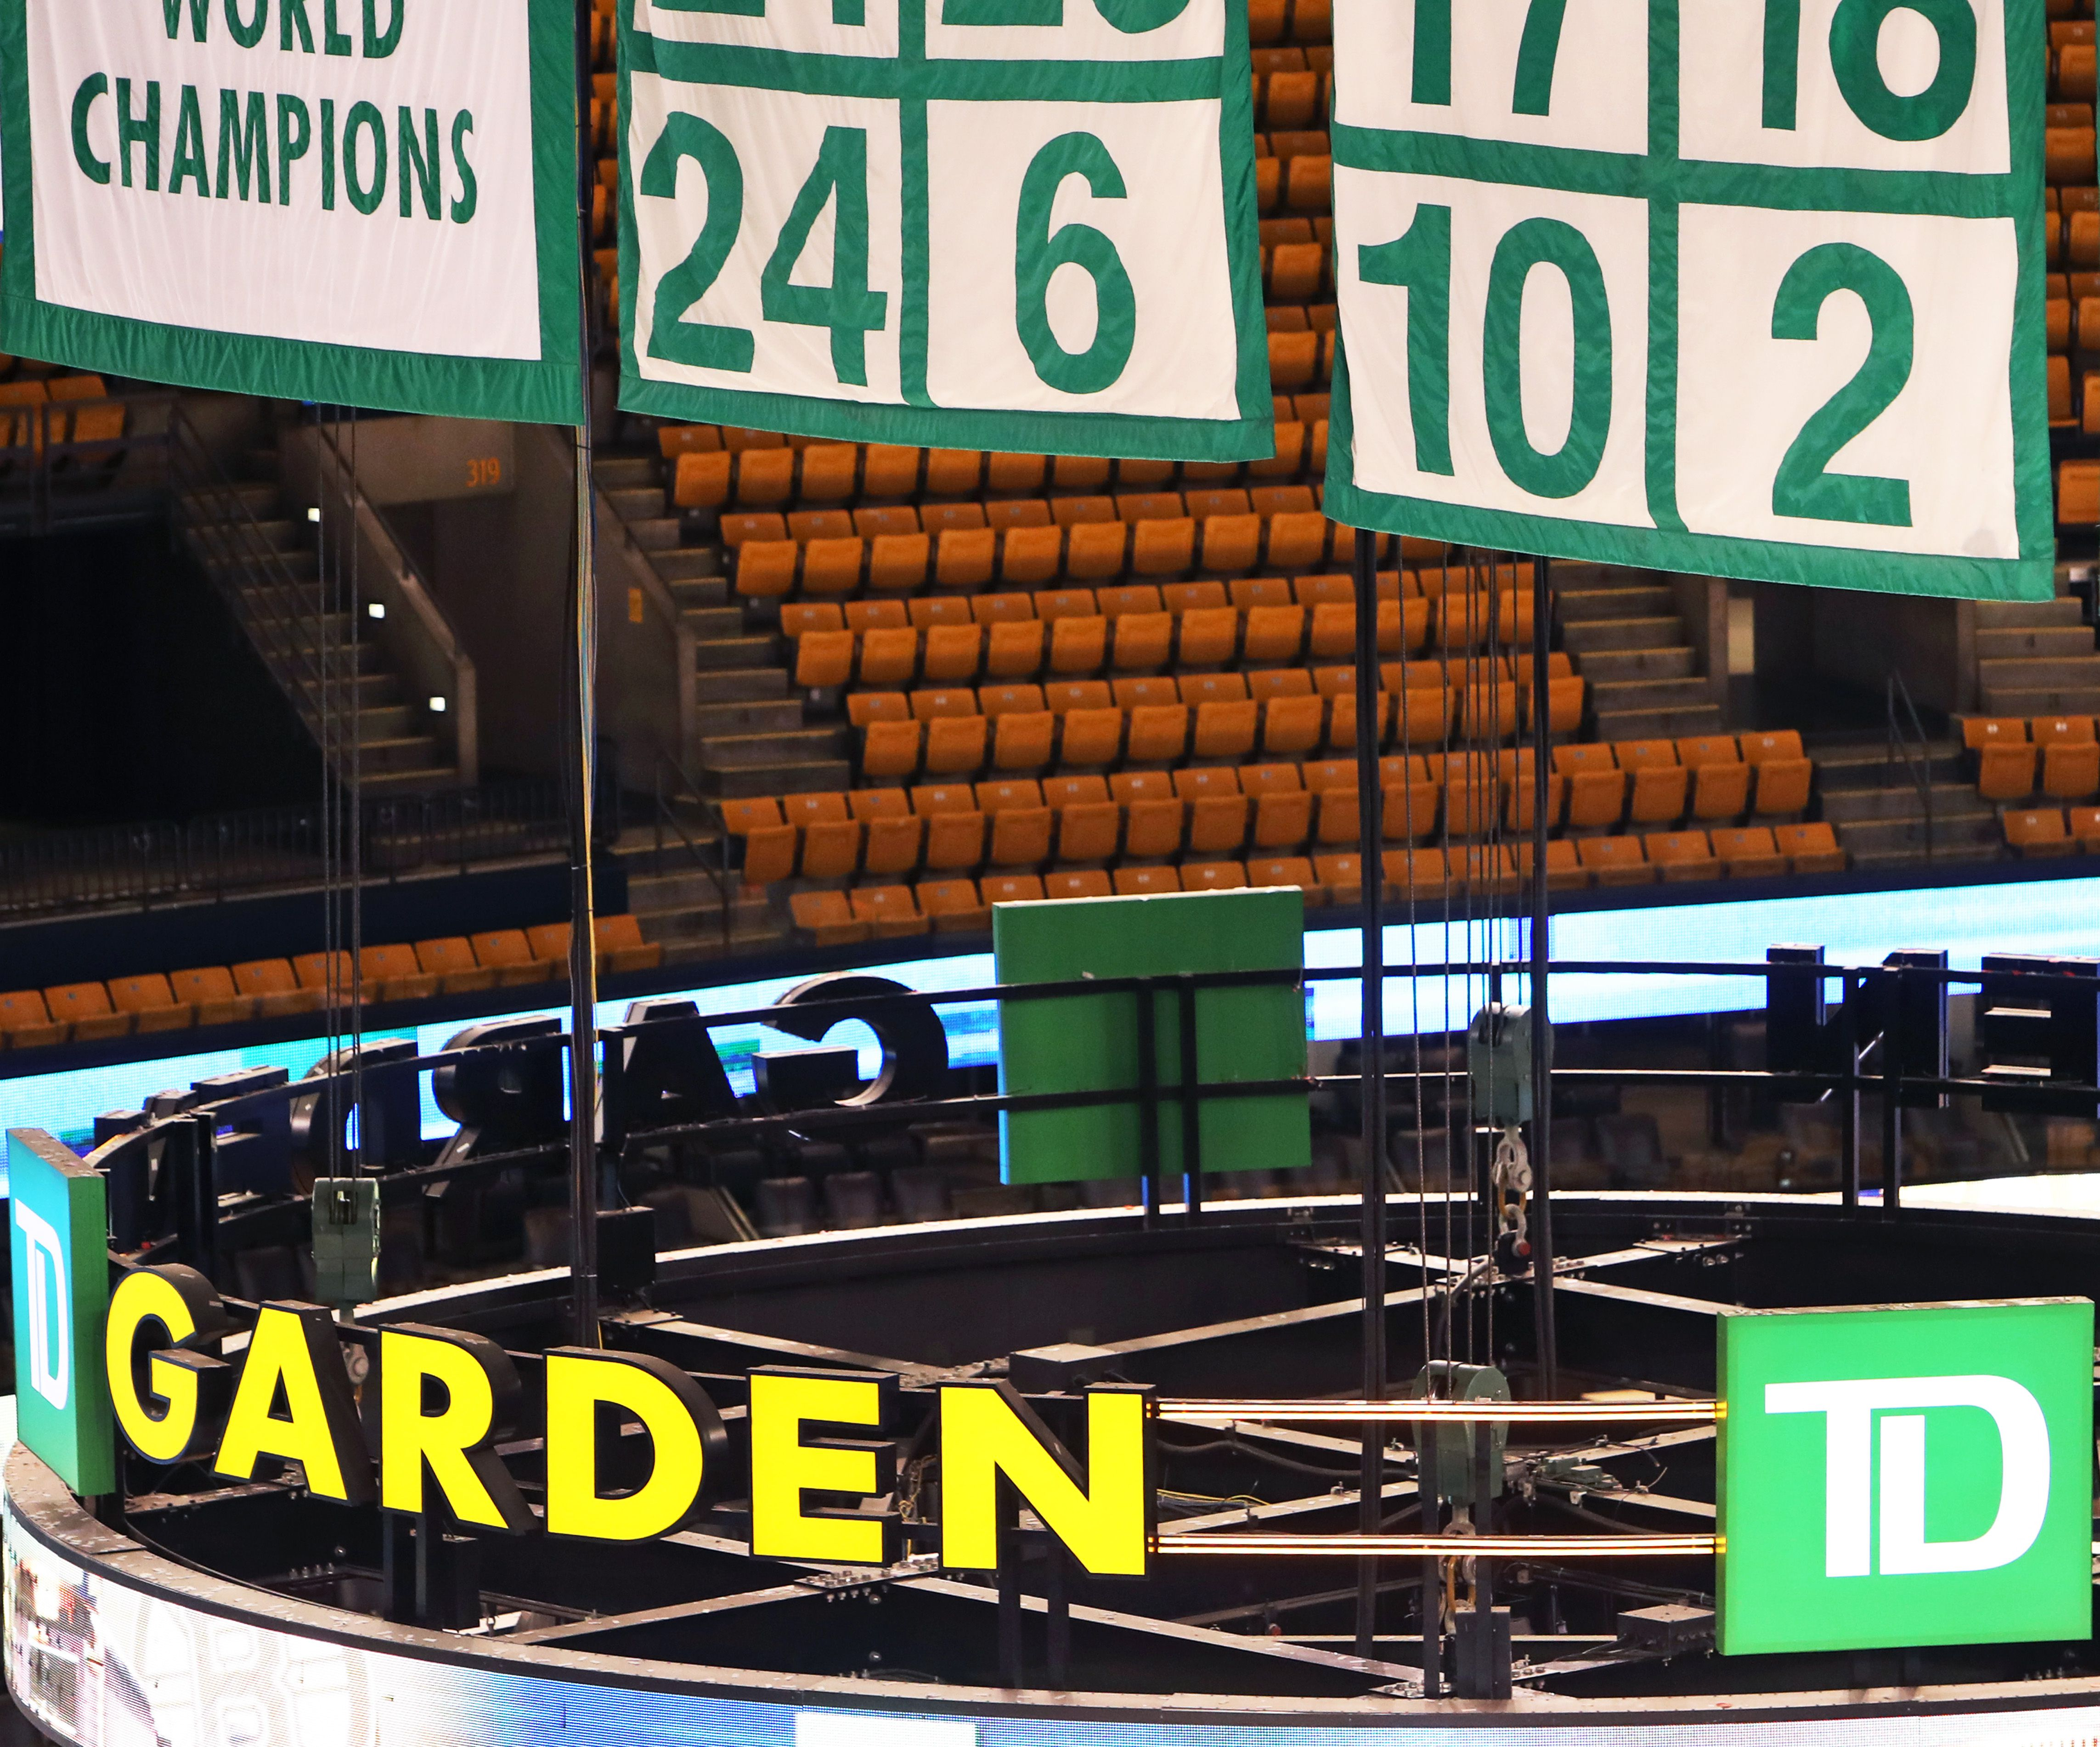 Why was Boston Garden nearly empty when Bill Russell's